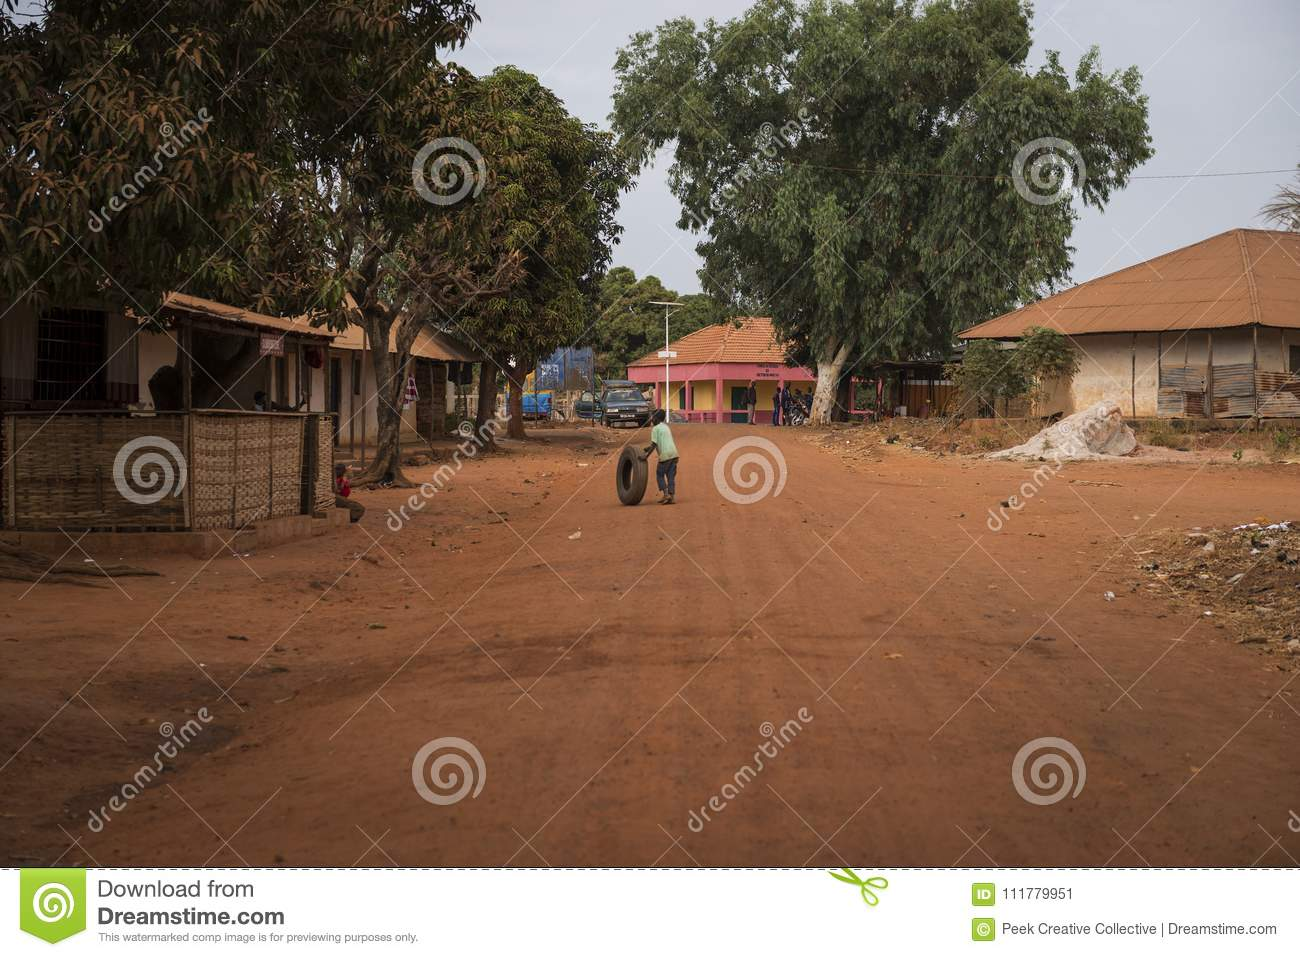 Young boy playing with an old tire in a dirt road in the town of Nhacra in Guinea Bissau, West Africa